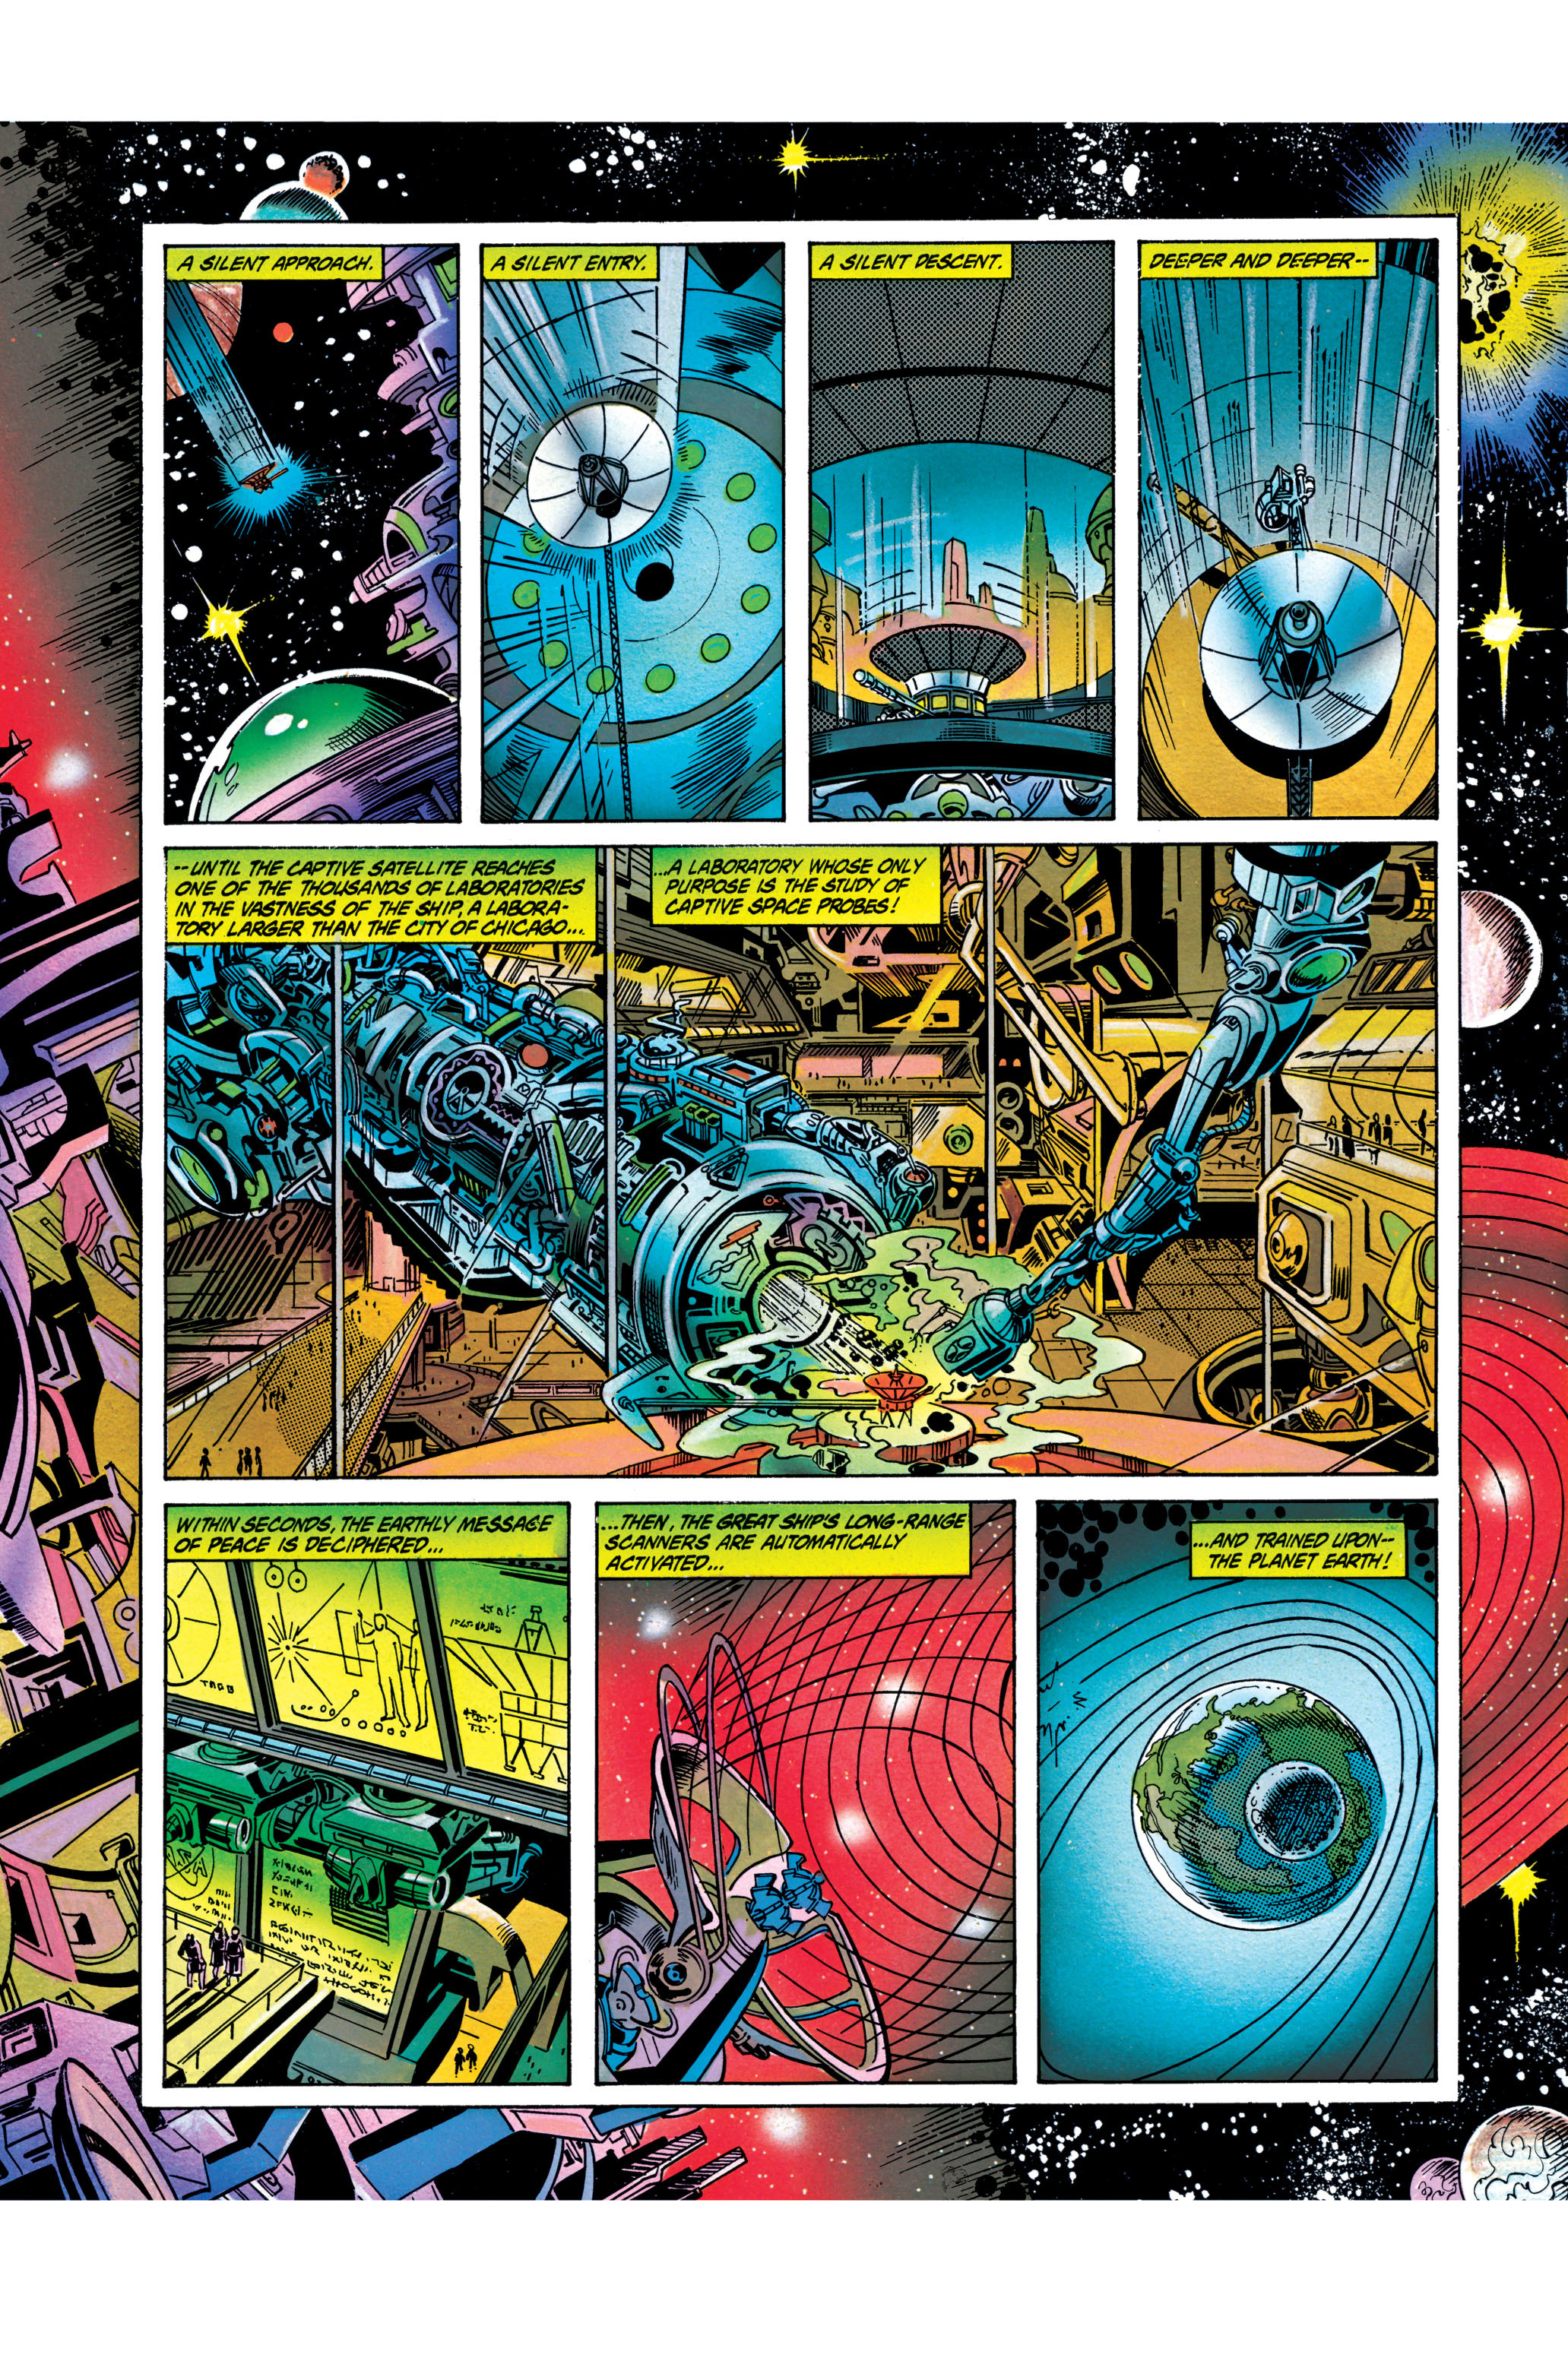 Read online Silver Surfer: Parable comic -  Issue # TPB - 65